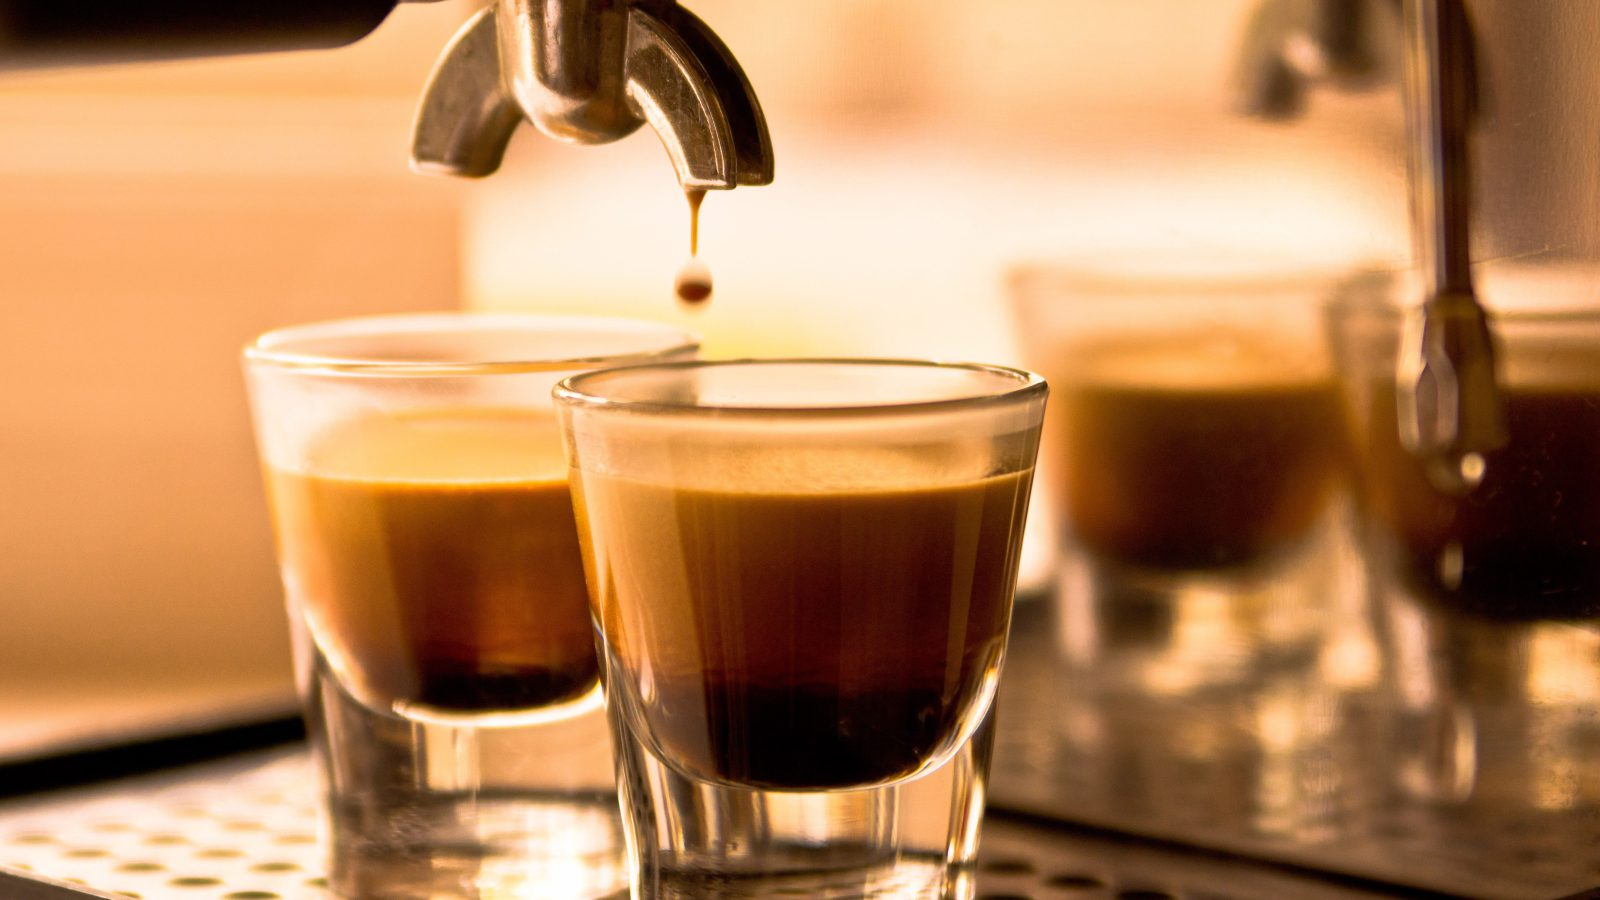 EU to spend $1.8M for next-gen espresso machines to reduce Europe's energy bill